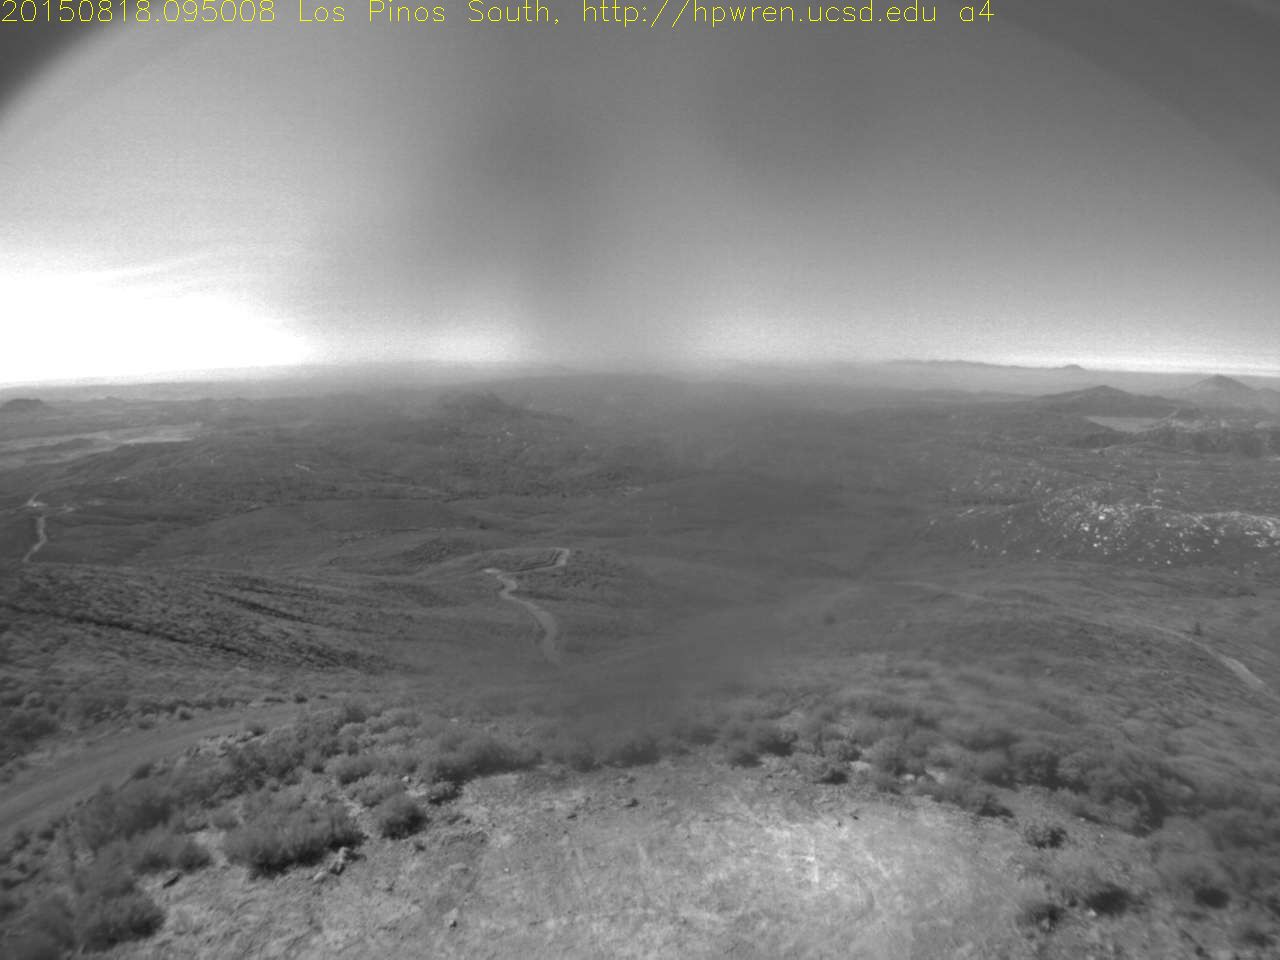 Wildfire Watch Webcams - pictured: Los Pinos ~south view - Fallbrook, CA  ---  United States : hpwren.ucsd  #California #Fires